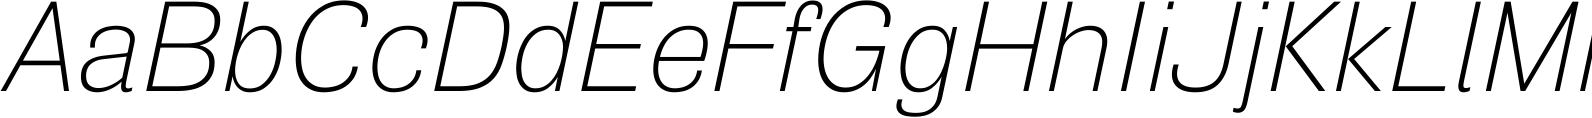 Air Ultra Light Oblique Font